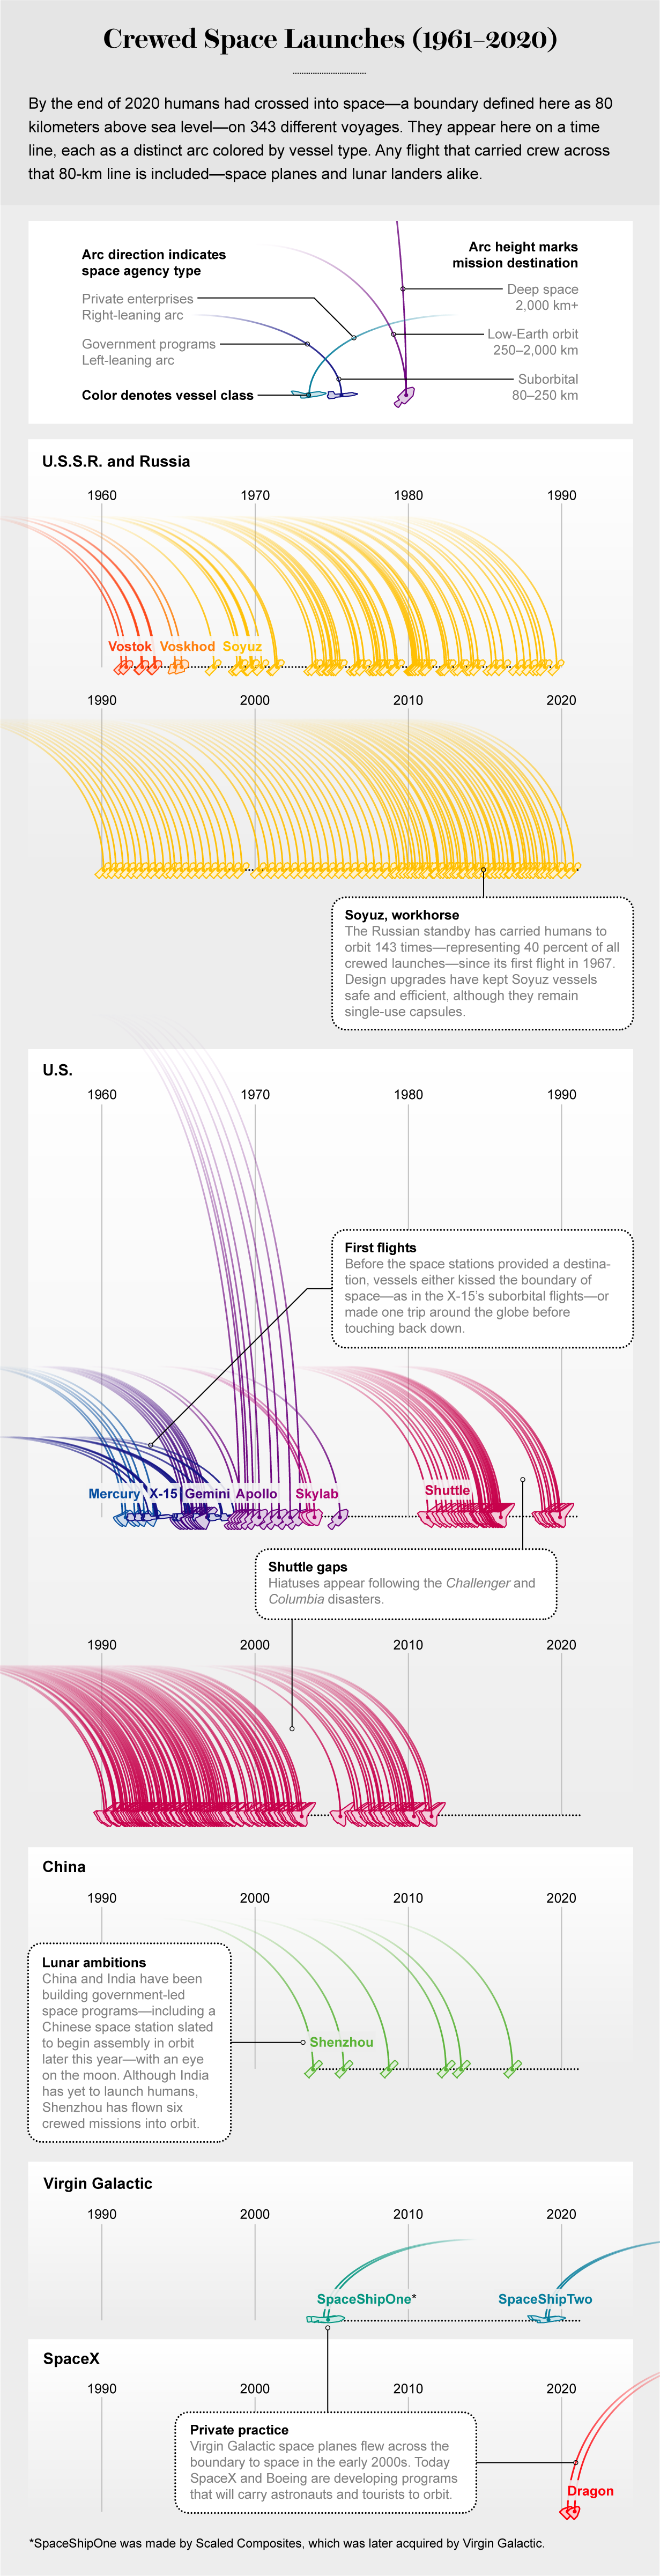 Time line shows years, space agencies, vessel classes and destinations of all crewed space launches from 1961 to 2020.